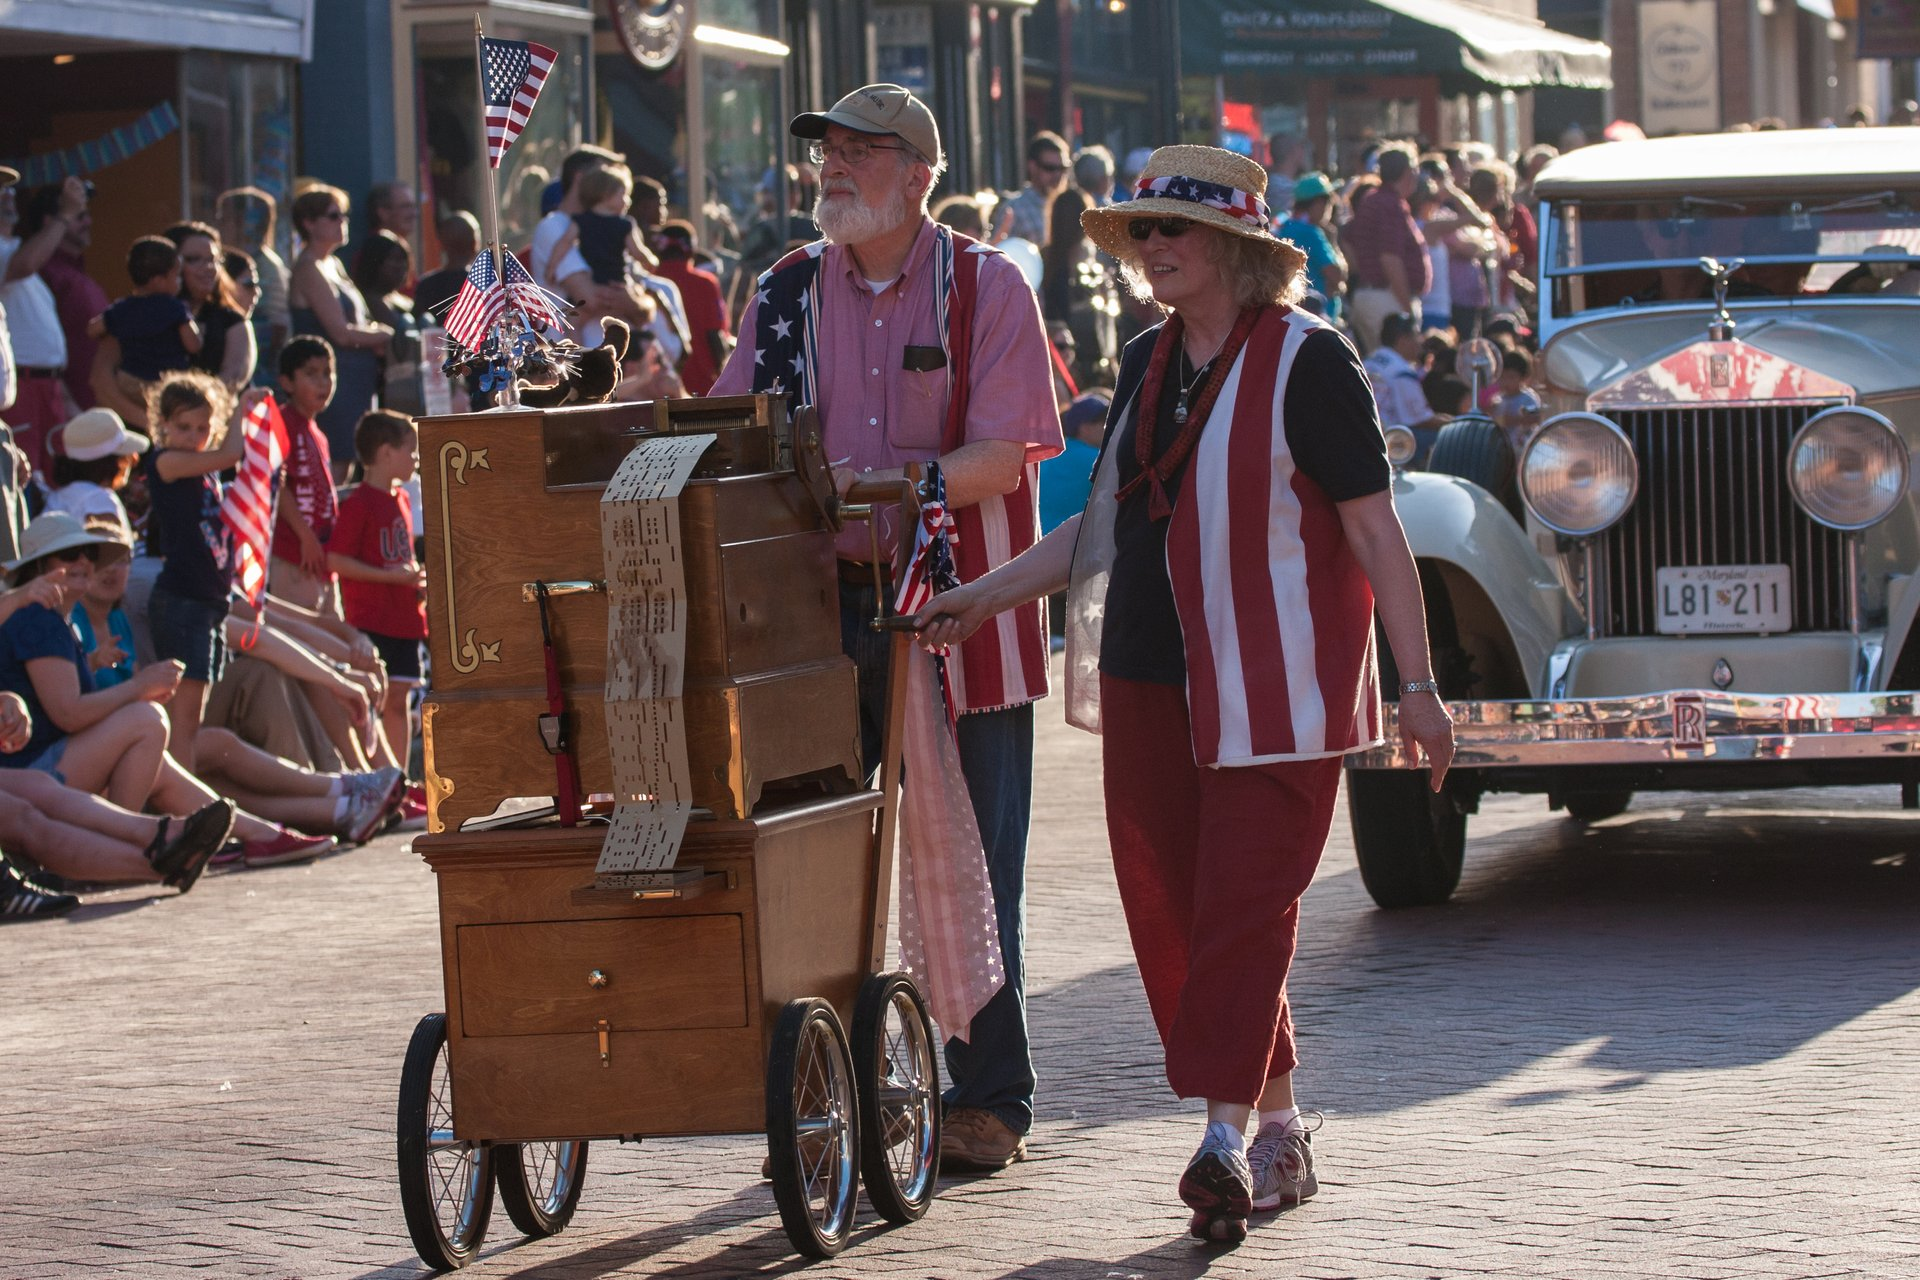 4th of July parade in Annapolis 2020